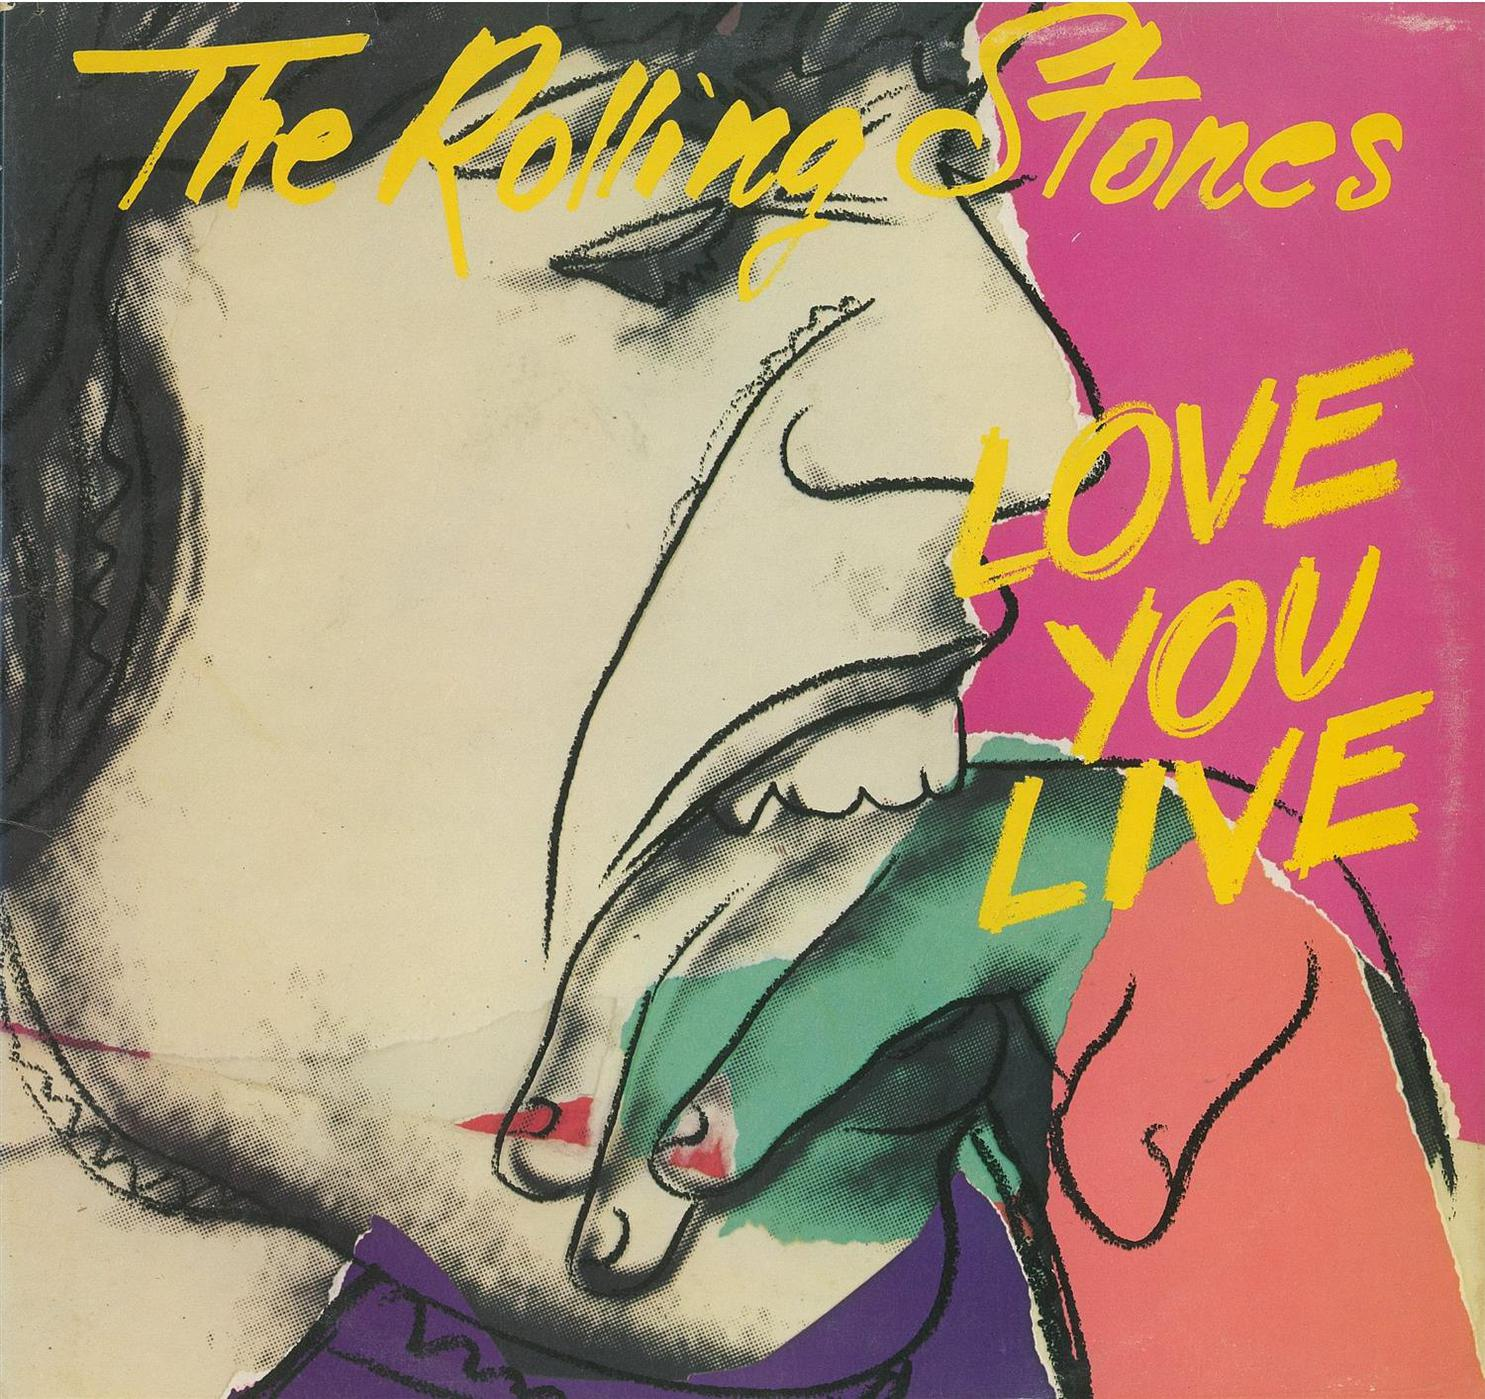 Andy Warhol-The Rolling Stones (Love You Live)-1977